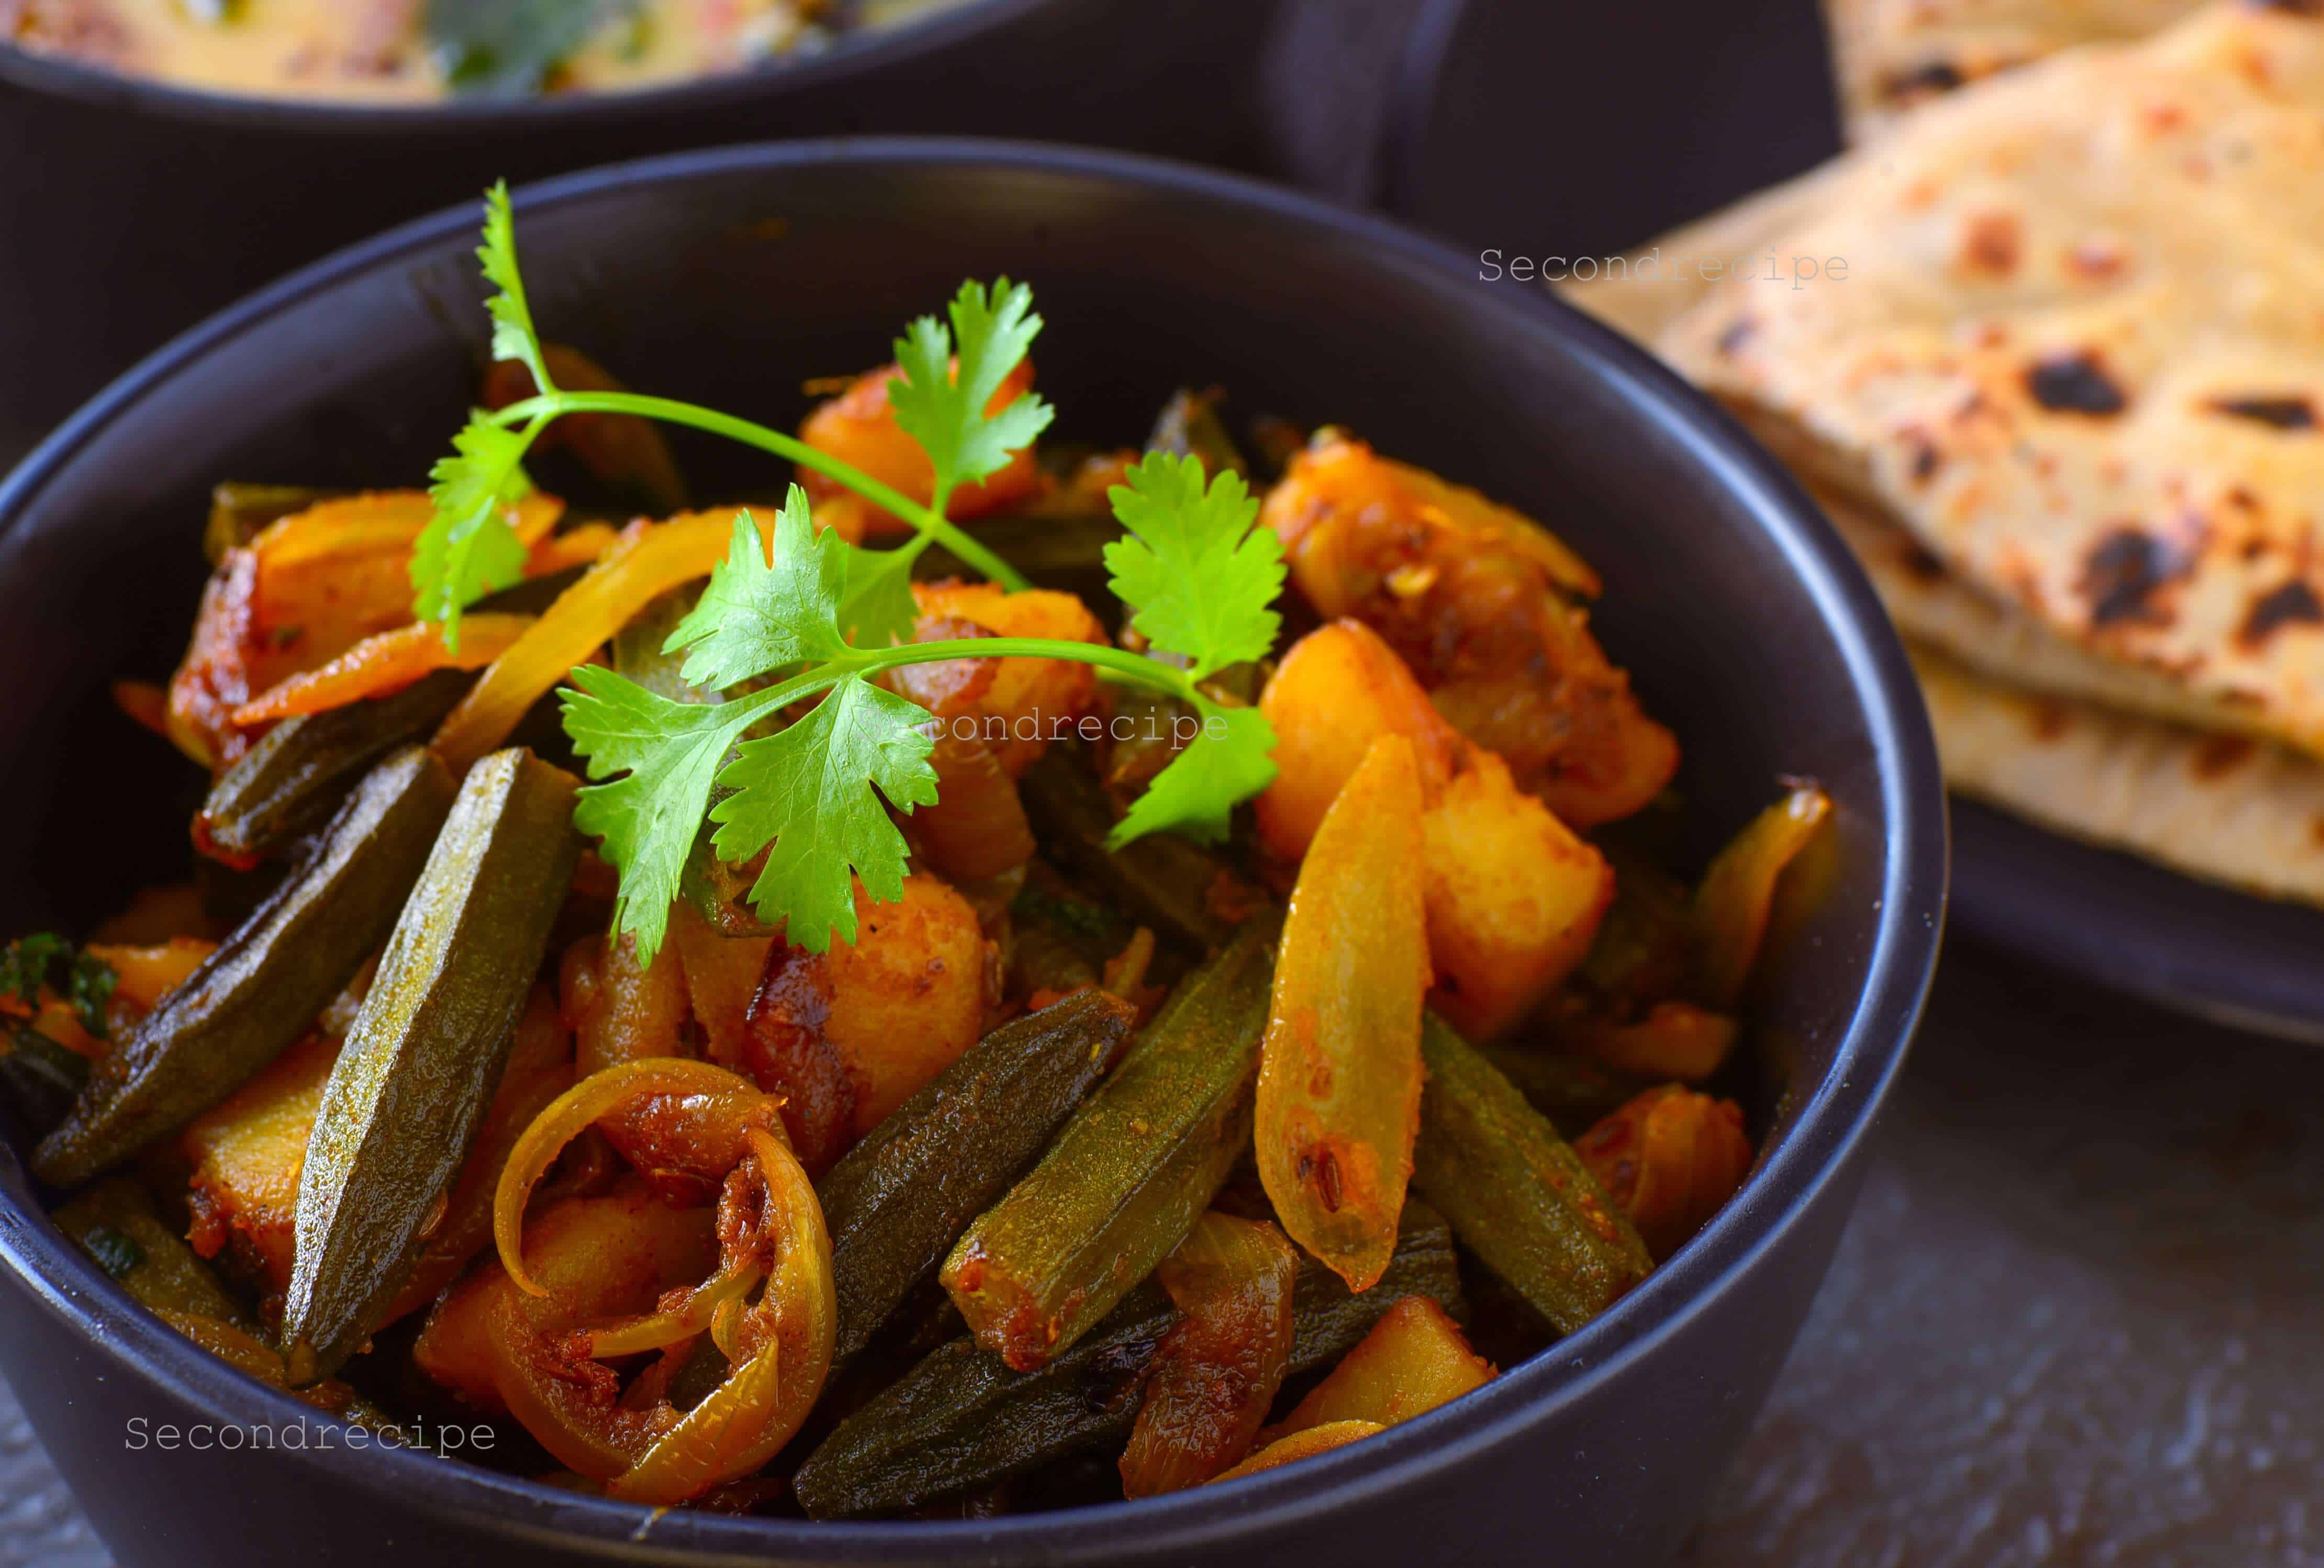 Bhindi basar patata-okra, onions & potato curry